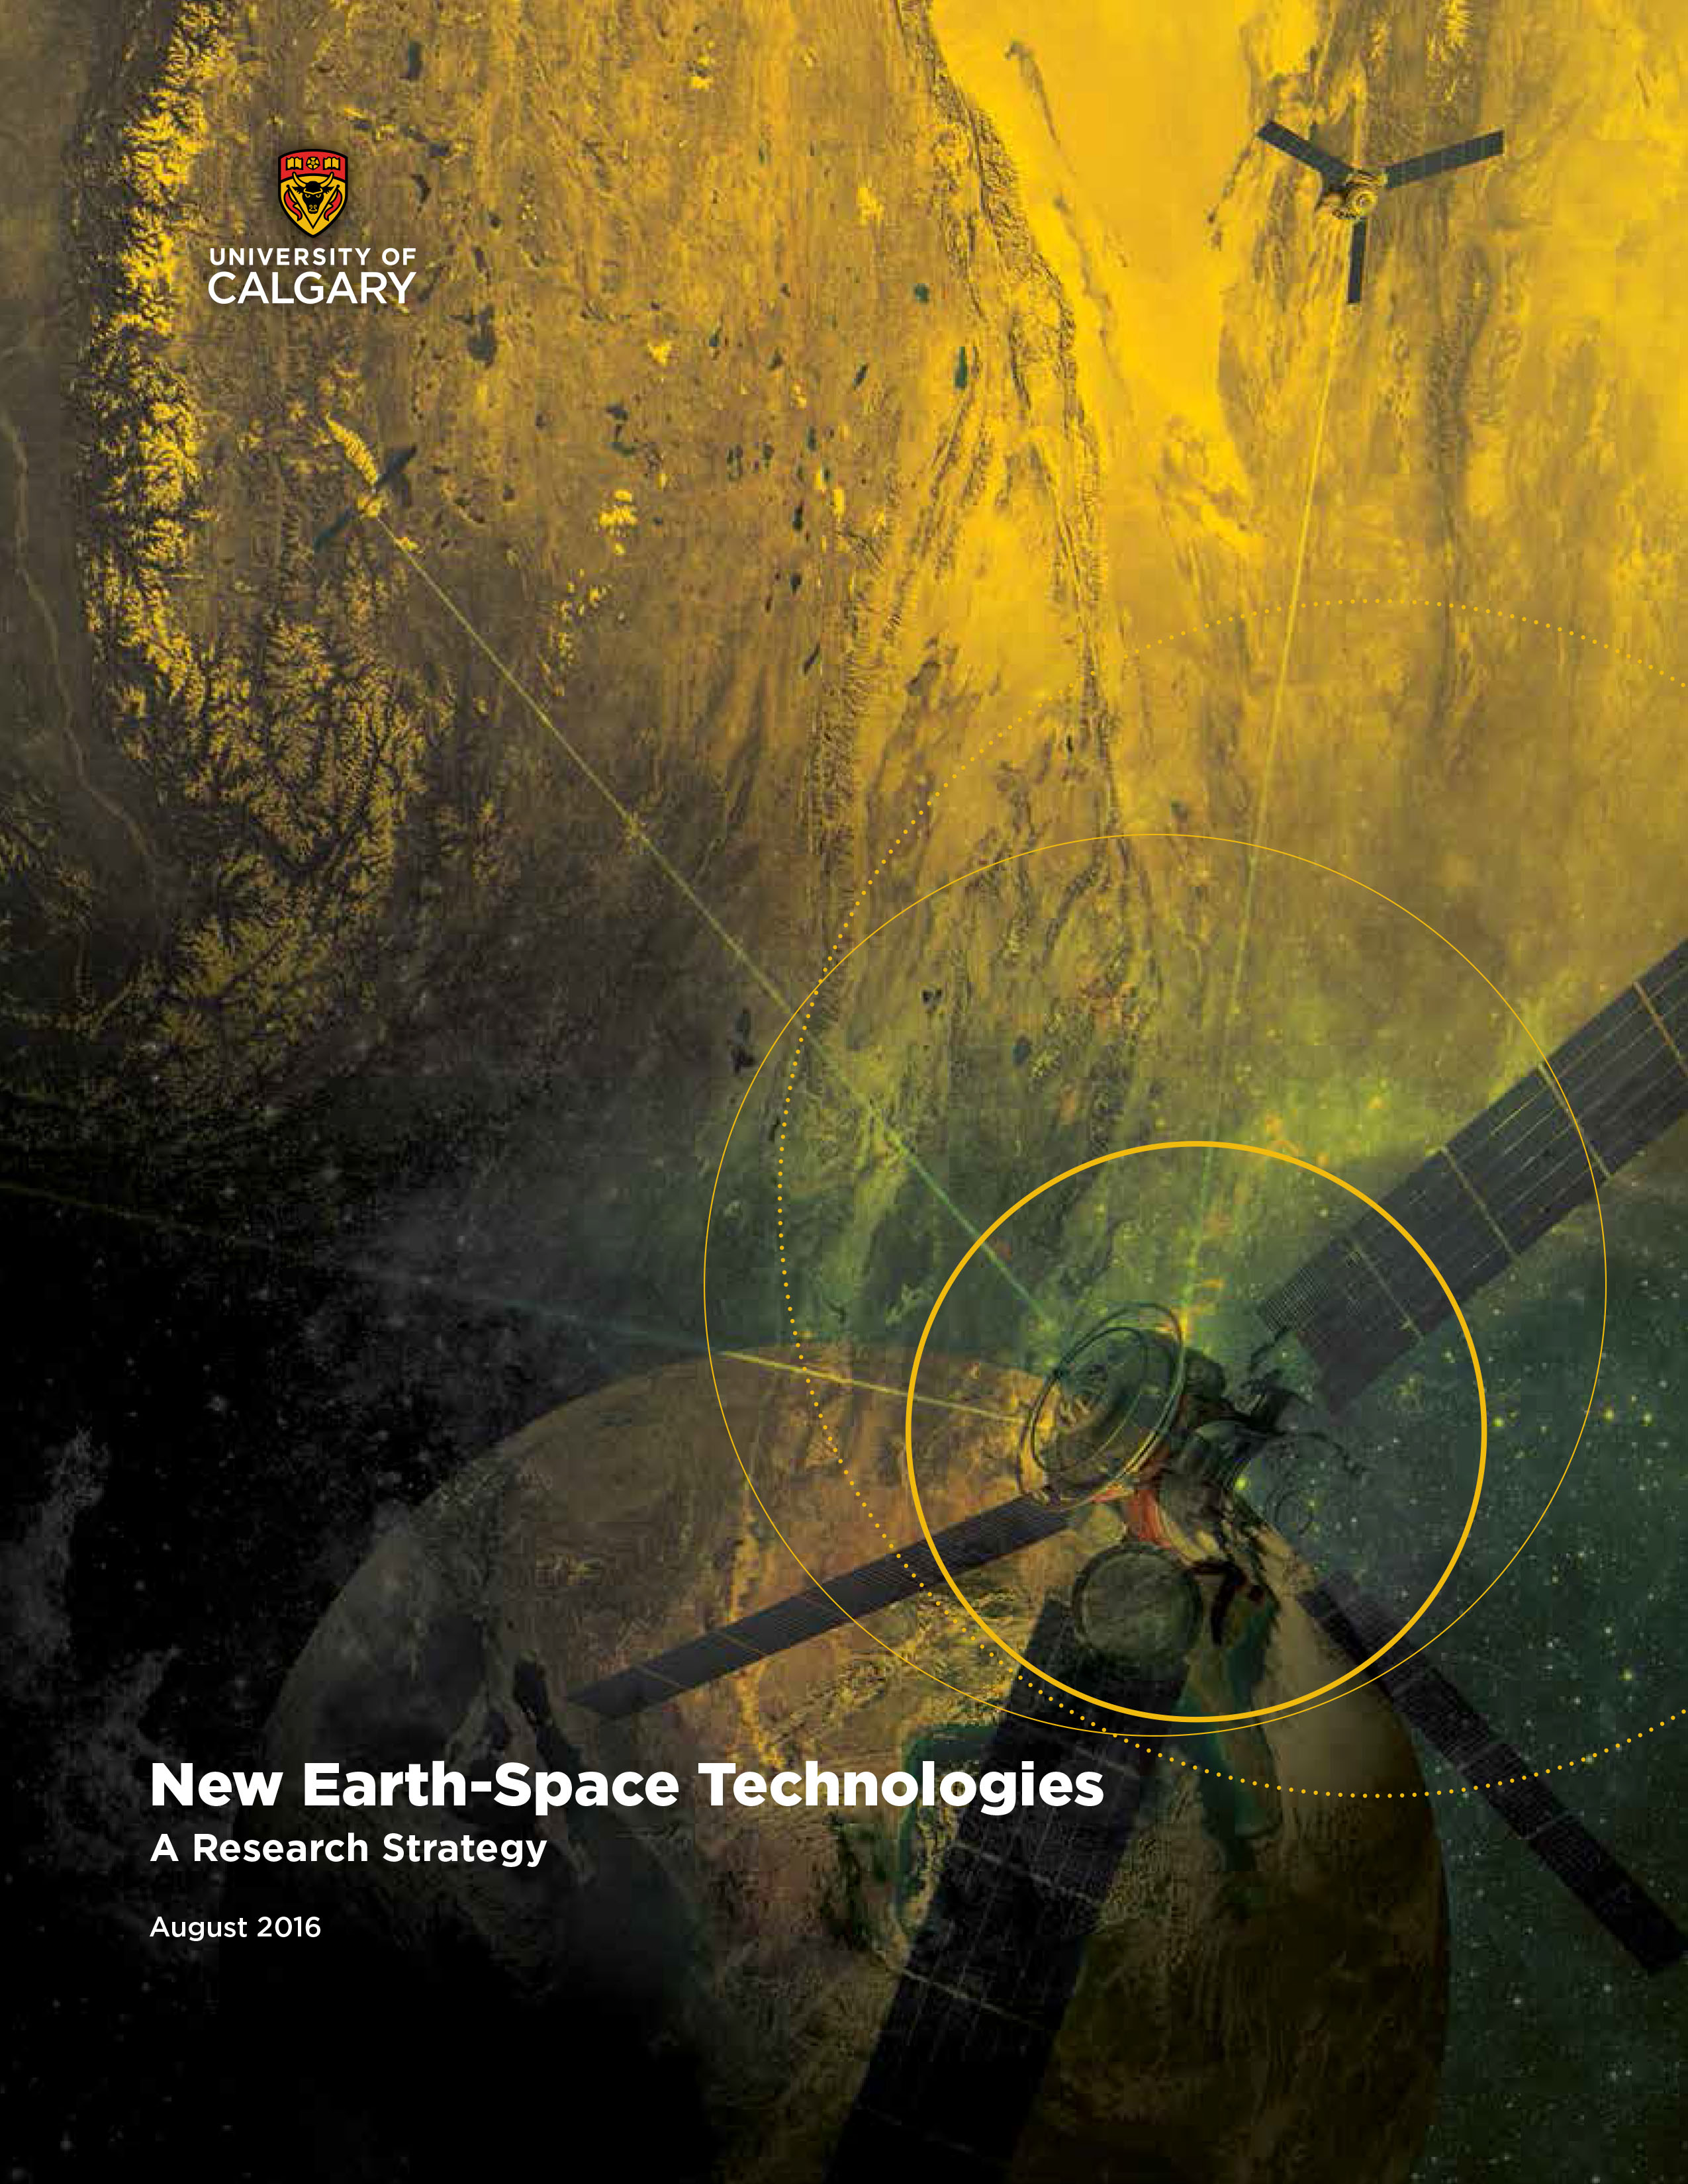 New Earth-Space Technologies